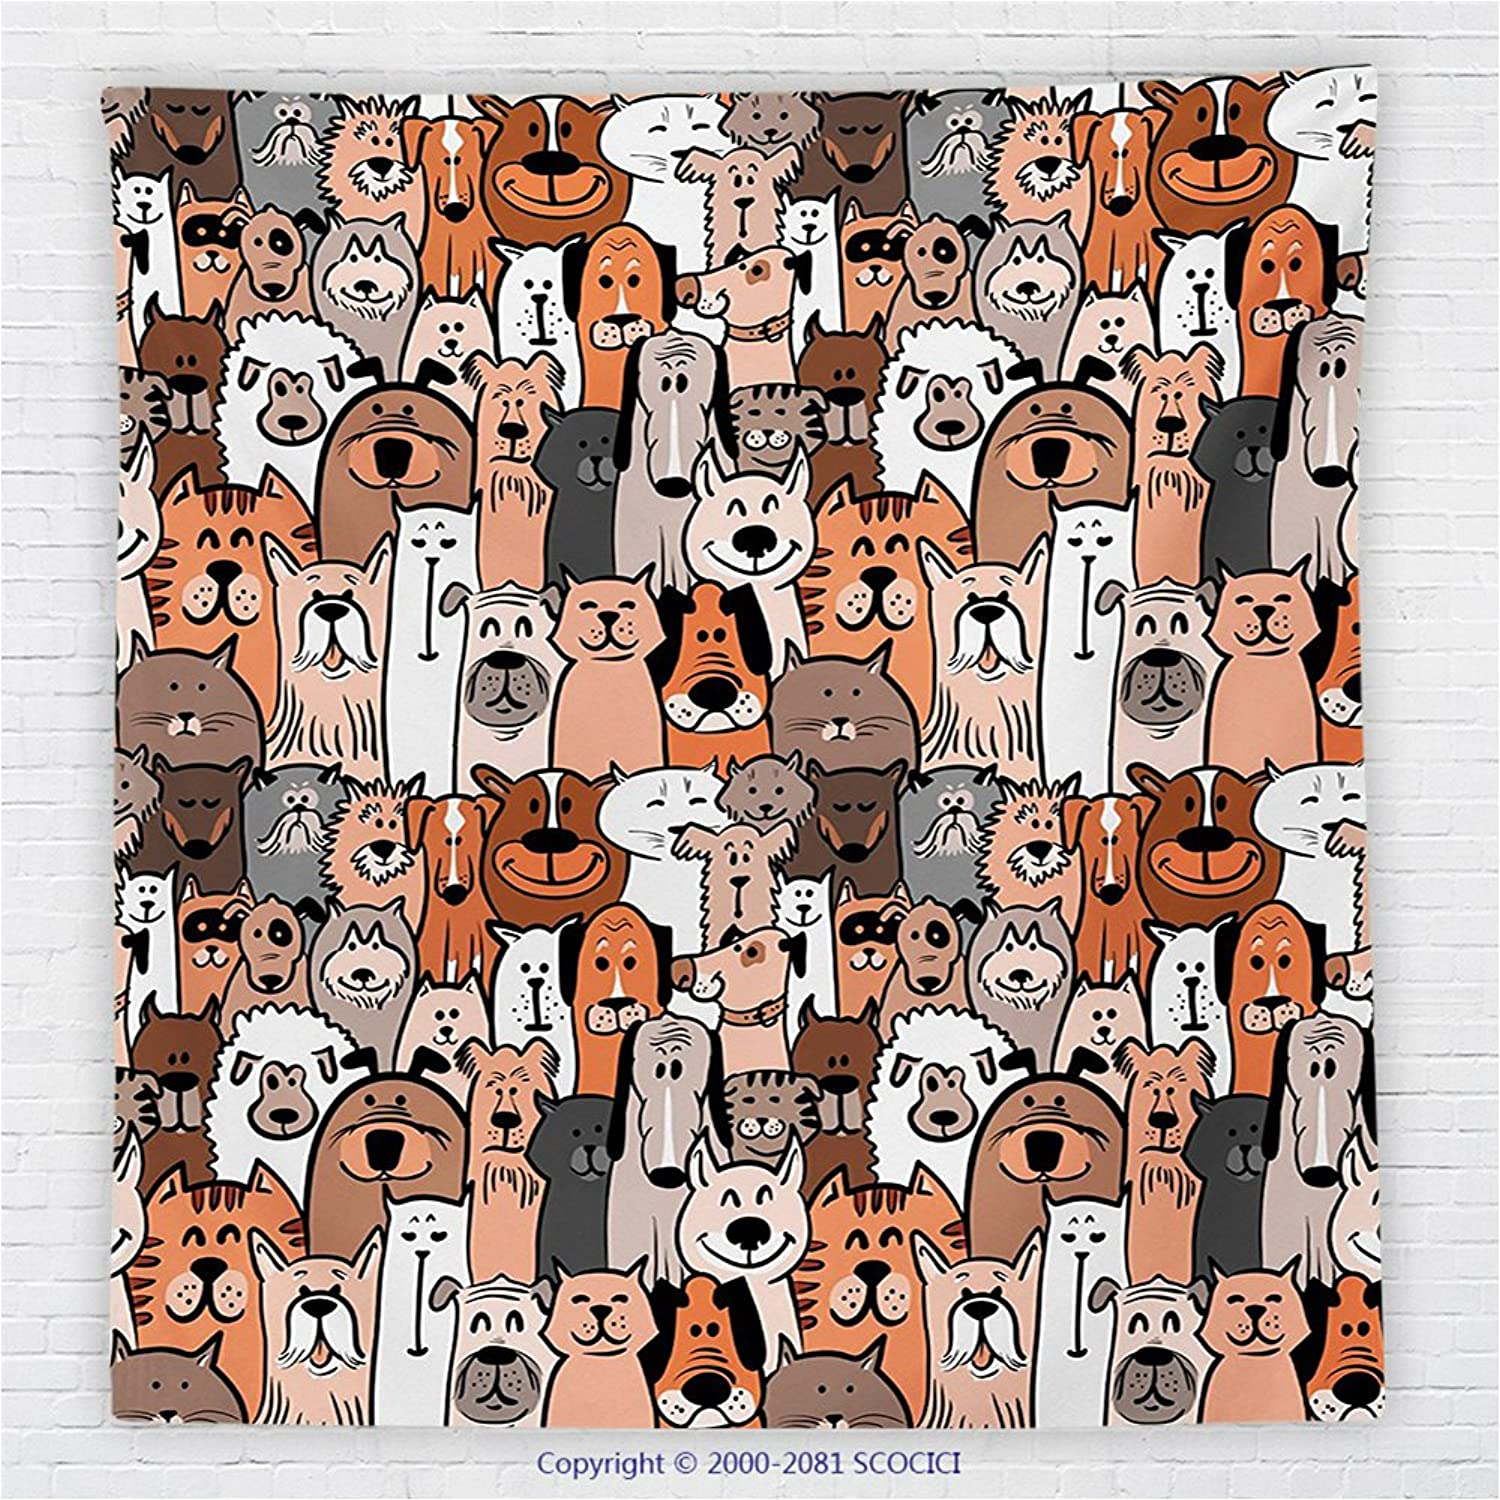 59 x 59 Inches Boys Girls Toddlers Room Decor Fleece Throw Blanket Pattern of Cats and Dogs Doodle Art Cartoon Style Retro Design Blanket Brown Grey